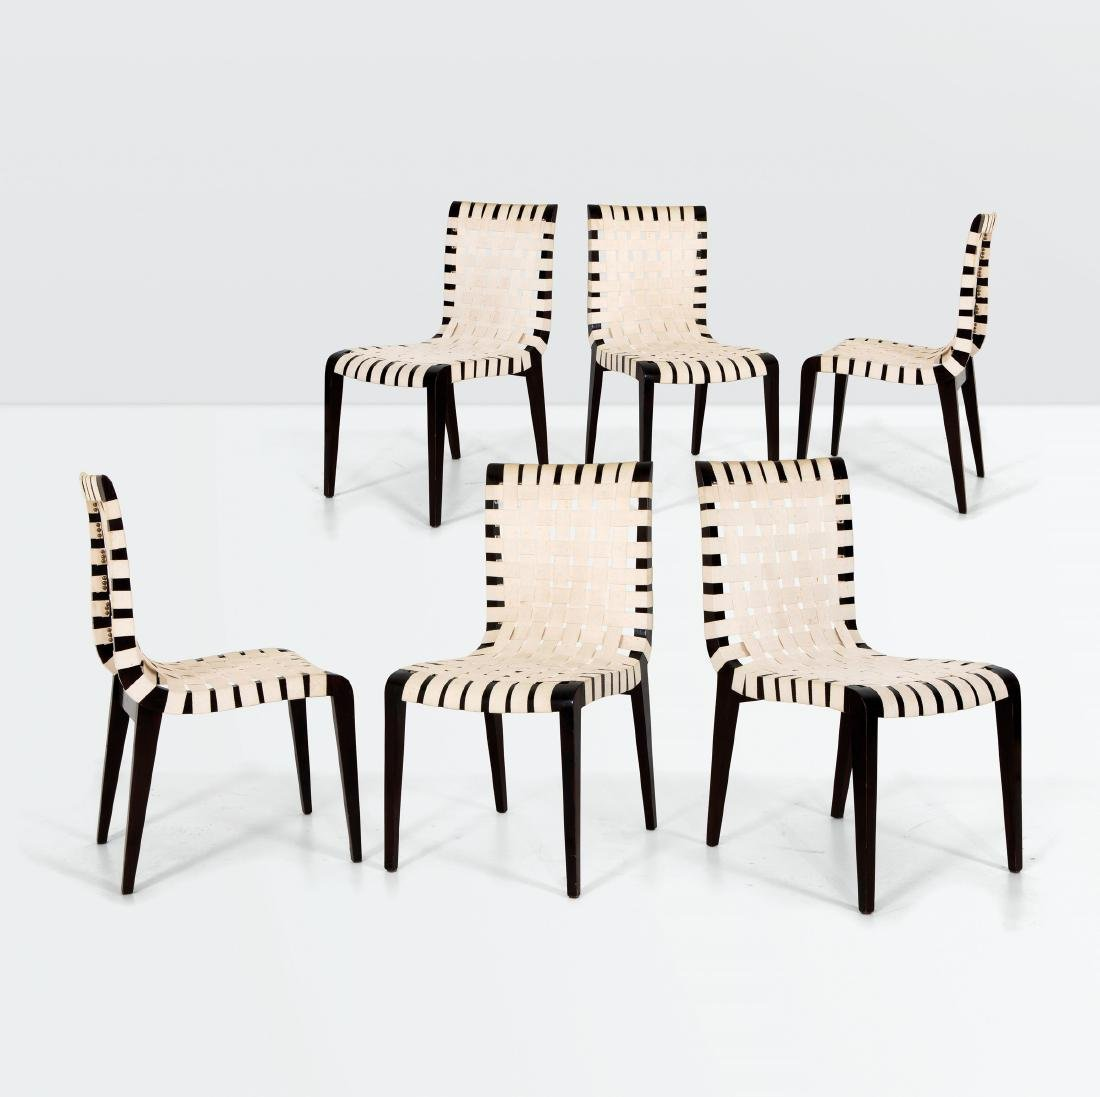 Augusto Romano, six chairs with a wooden structure and